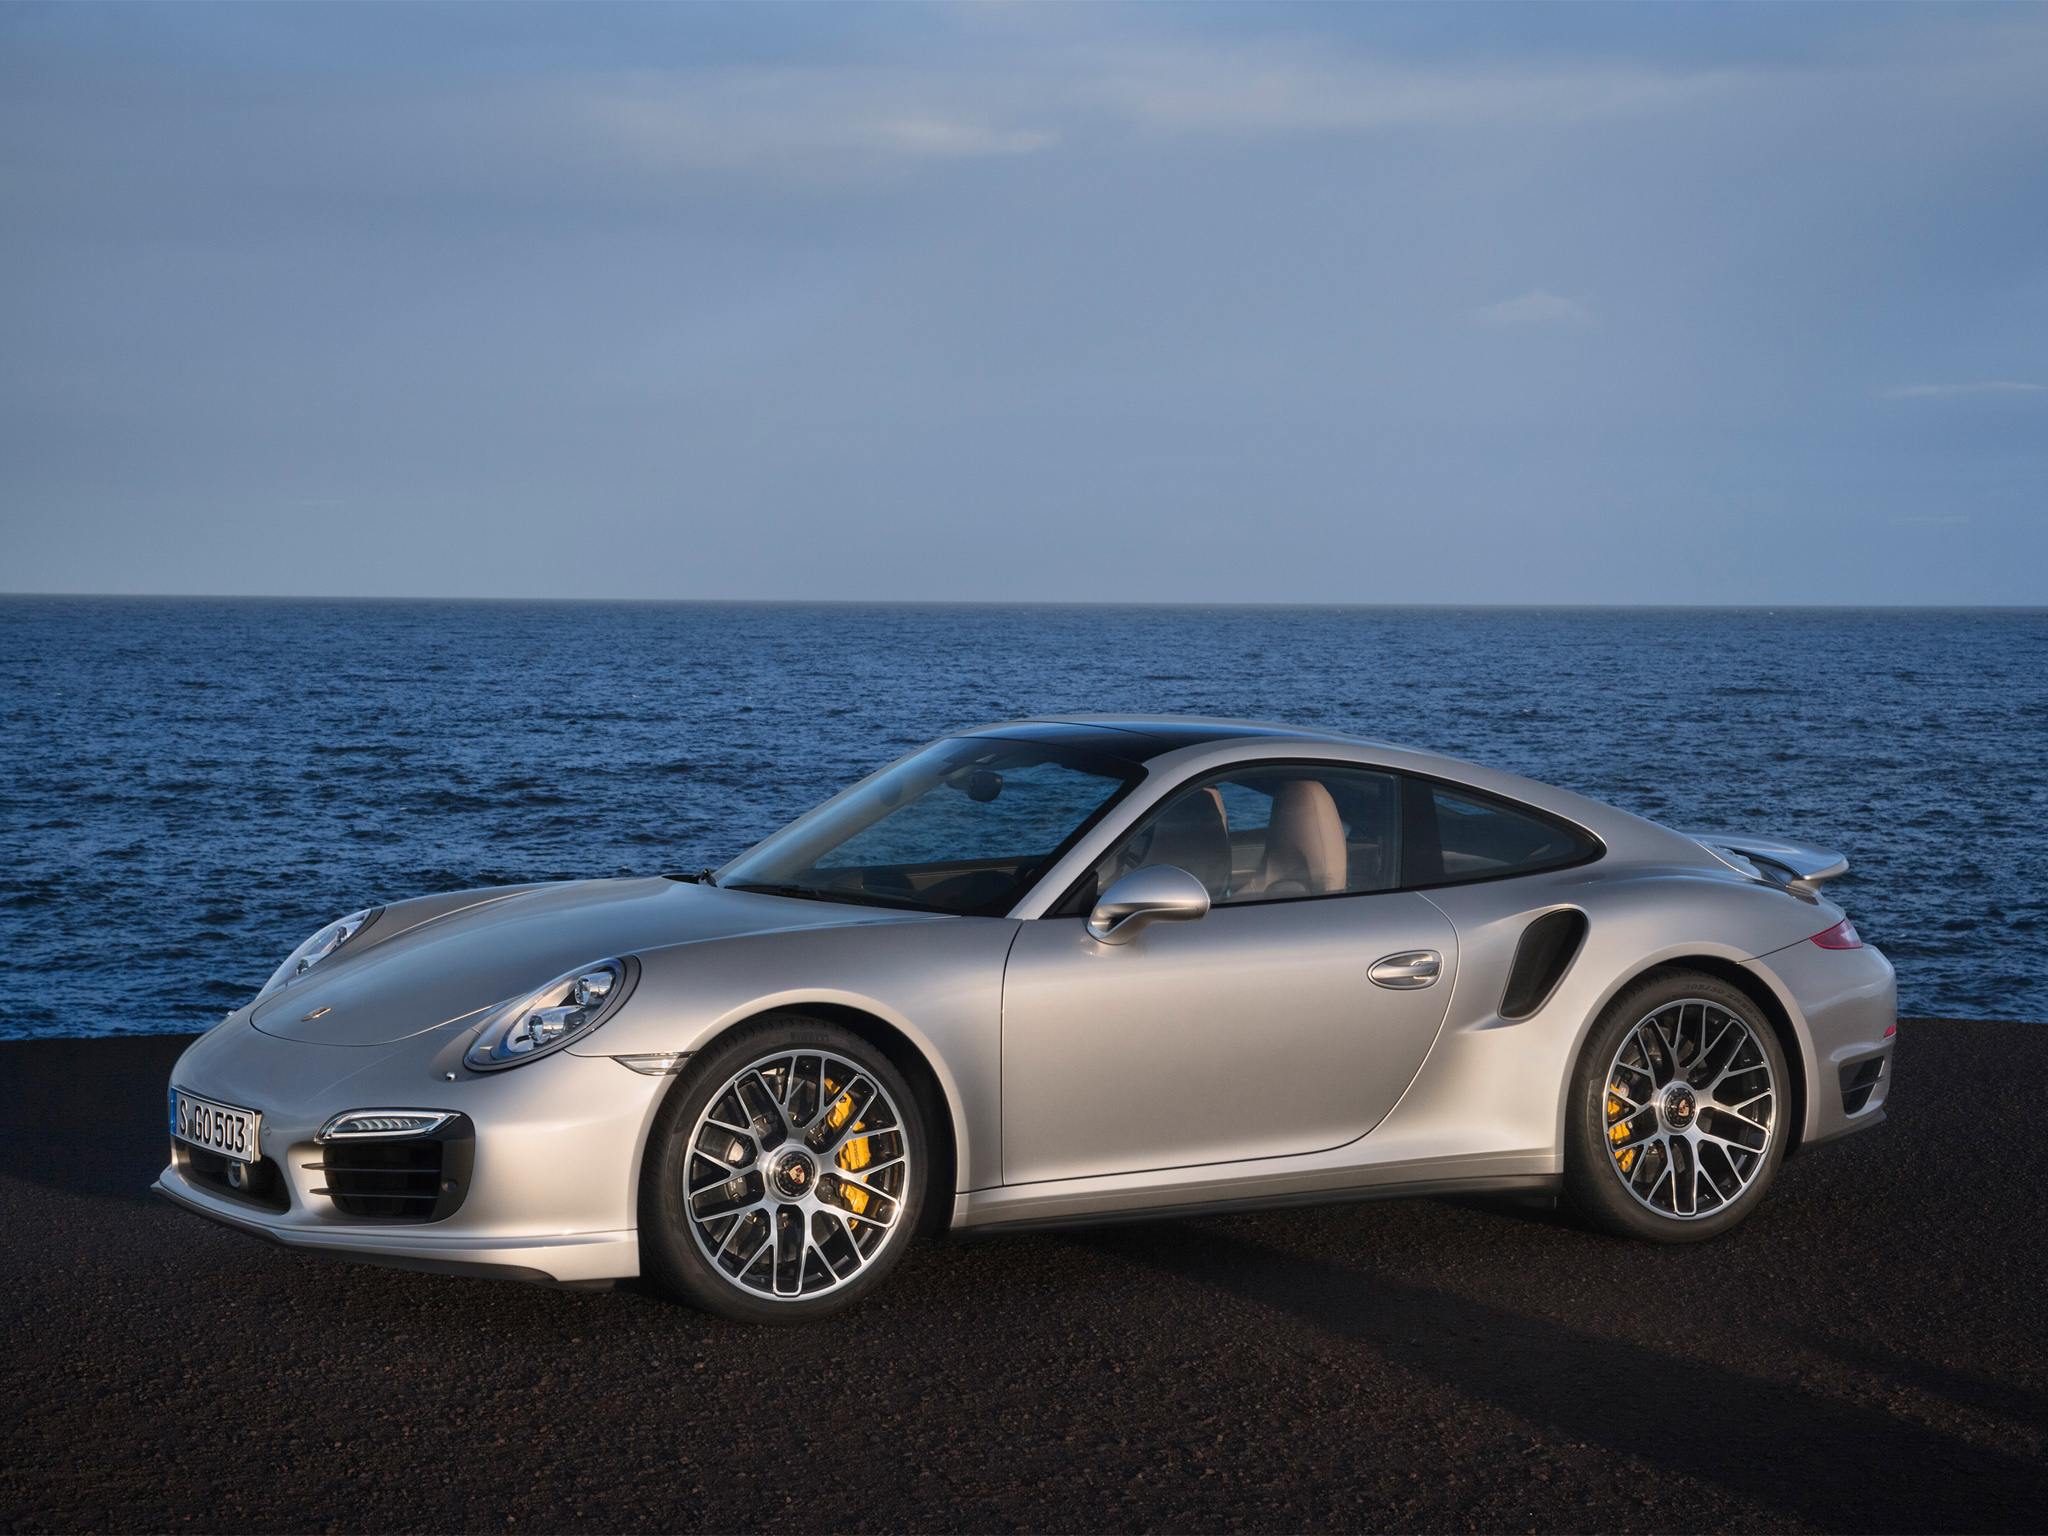 90 porsche 911 turbo hd wallpapers | background images - wallpaper abyss